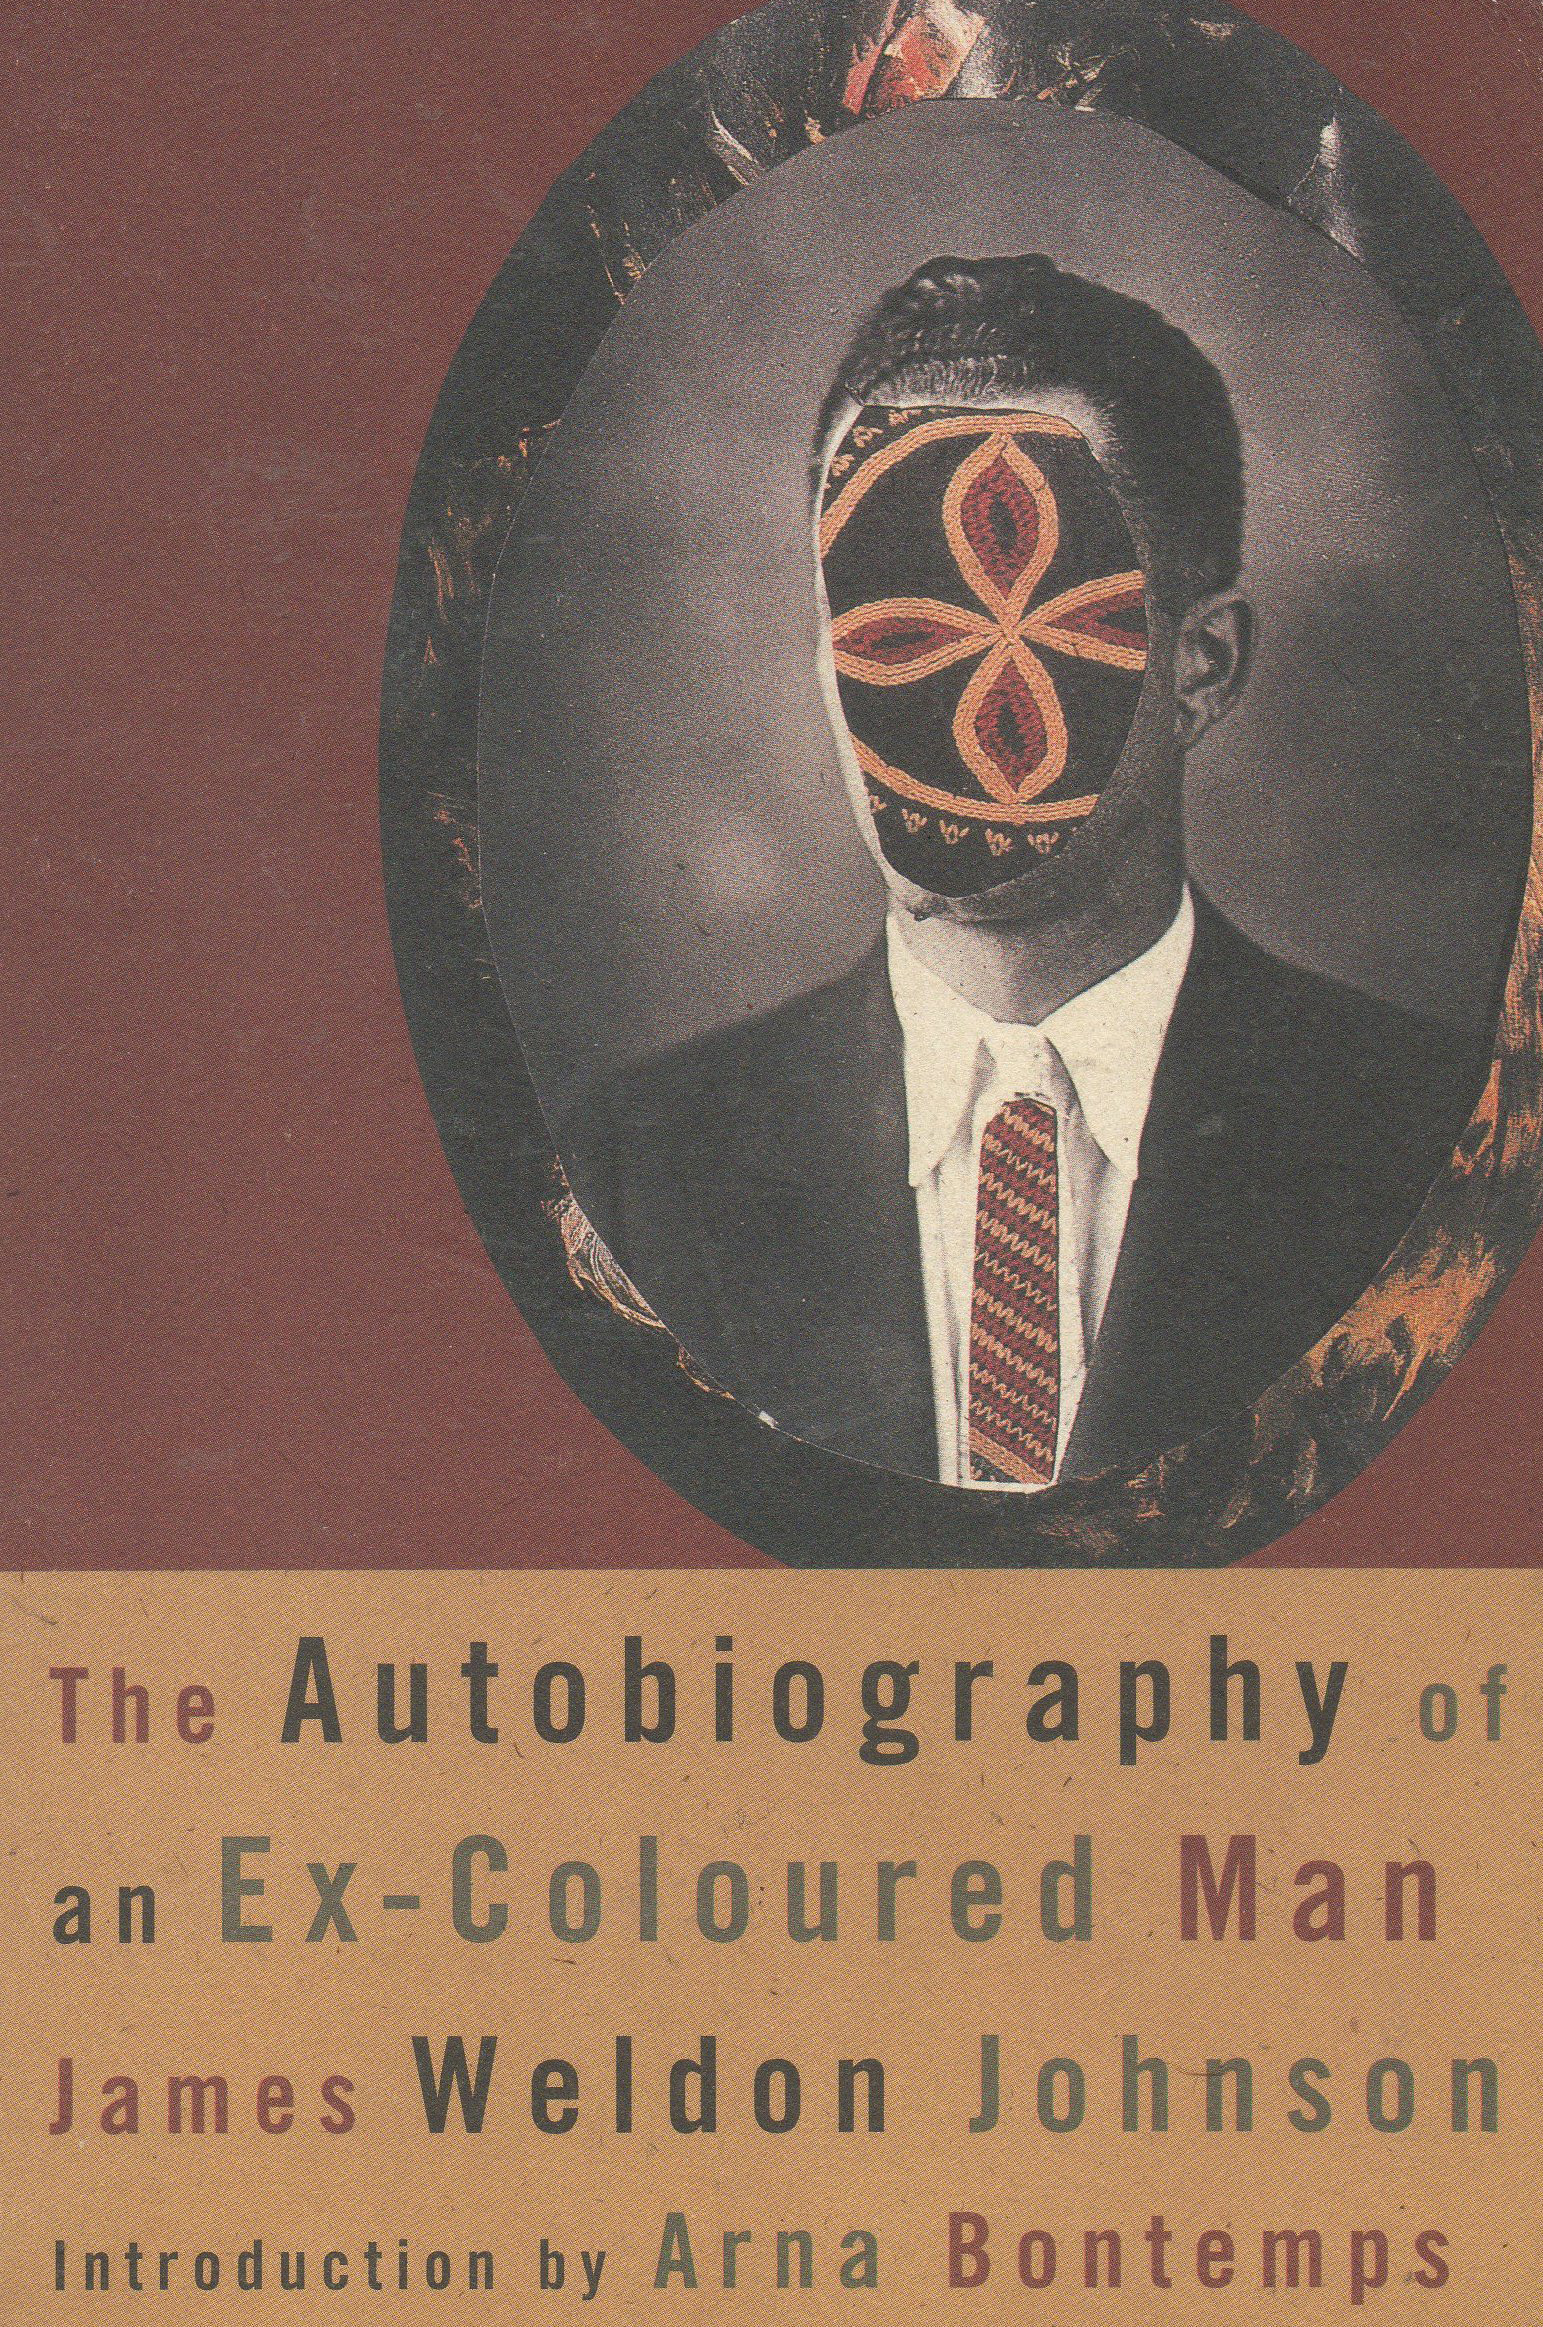 """<i><a href=""""http://www.amazon.com/dp/1456314882/?tag=timecom-20"""" target=""""_blank"""">The Autobiography of an Ex-Colored Man</a></i>                                   By James Weldon Johnson, 92 pages. The narrator of this 1912 novel is a black man with fair skin who decides to """"pass"""" as white after witnessing a brutal lynching. He accordingly gives up his dream of creating a new African American musical genre, and looks back years later feeling that he made the wrong decision, """"that I have sold my birthright for a mess of pottage."""""""